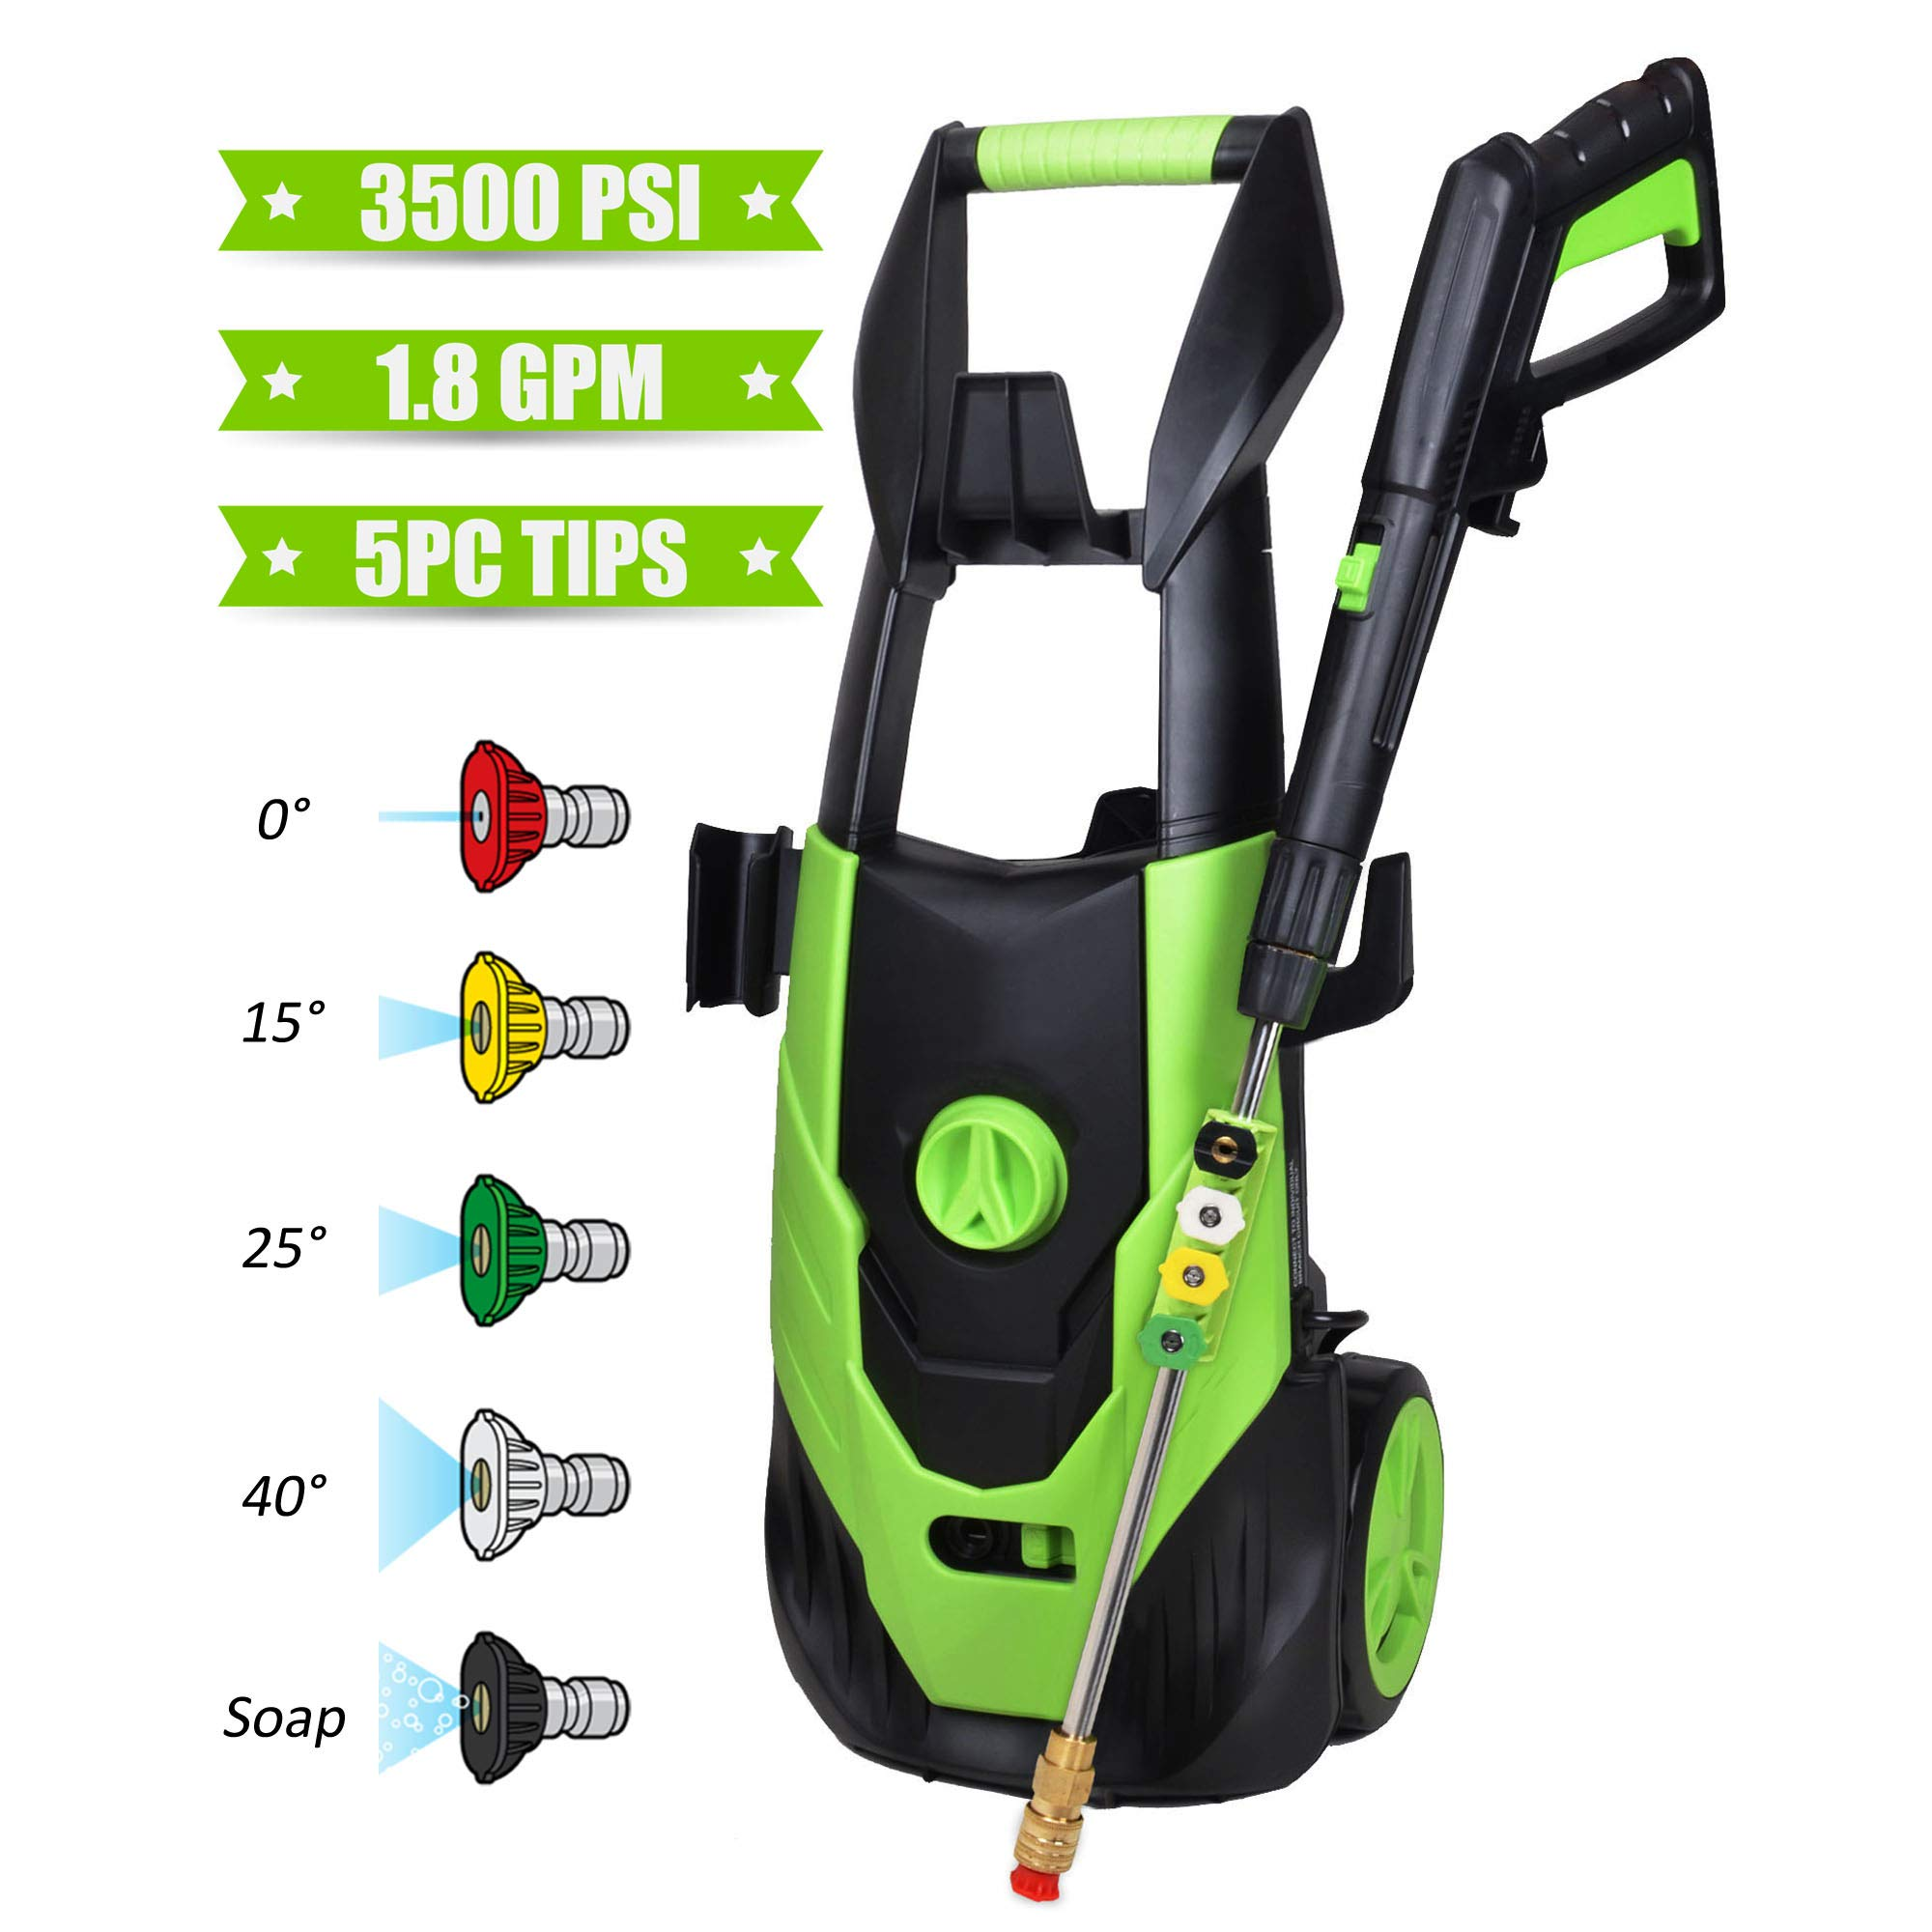 Azoran Electric Pressure Washer, Electric Power Washer with 5 Quick-Connect Spray Tips, Car Washer Machine - 3500 PSI 1.8 GPM